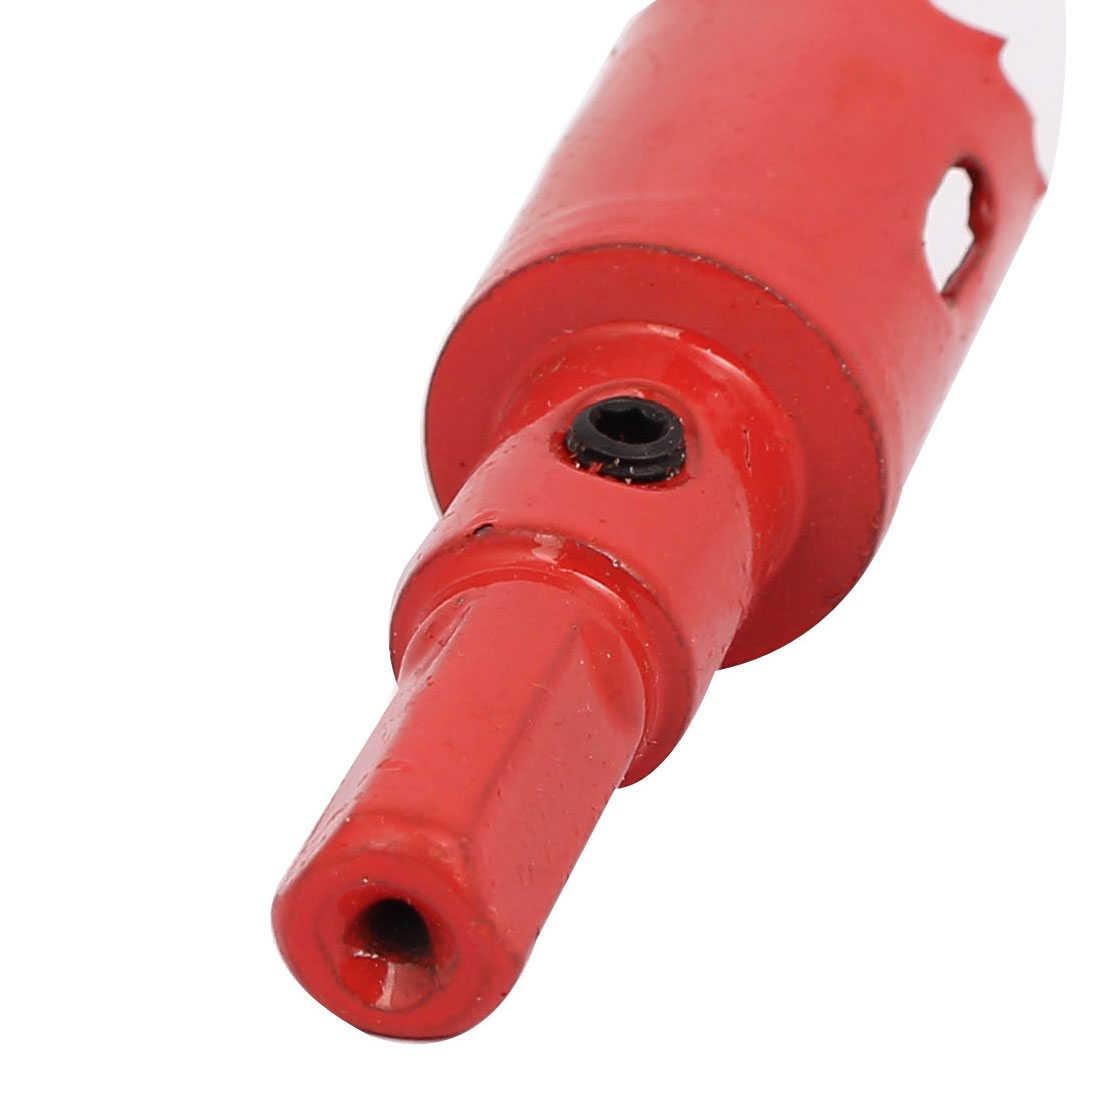 20.5mm Cutting Dia M42 HSS Spring Loaded Bi-Metal Hole Saw Drilling Tool Red